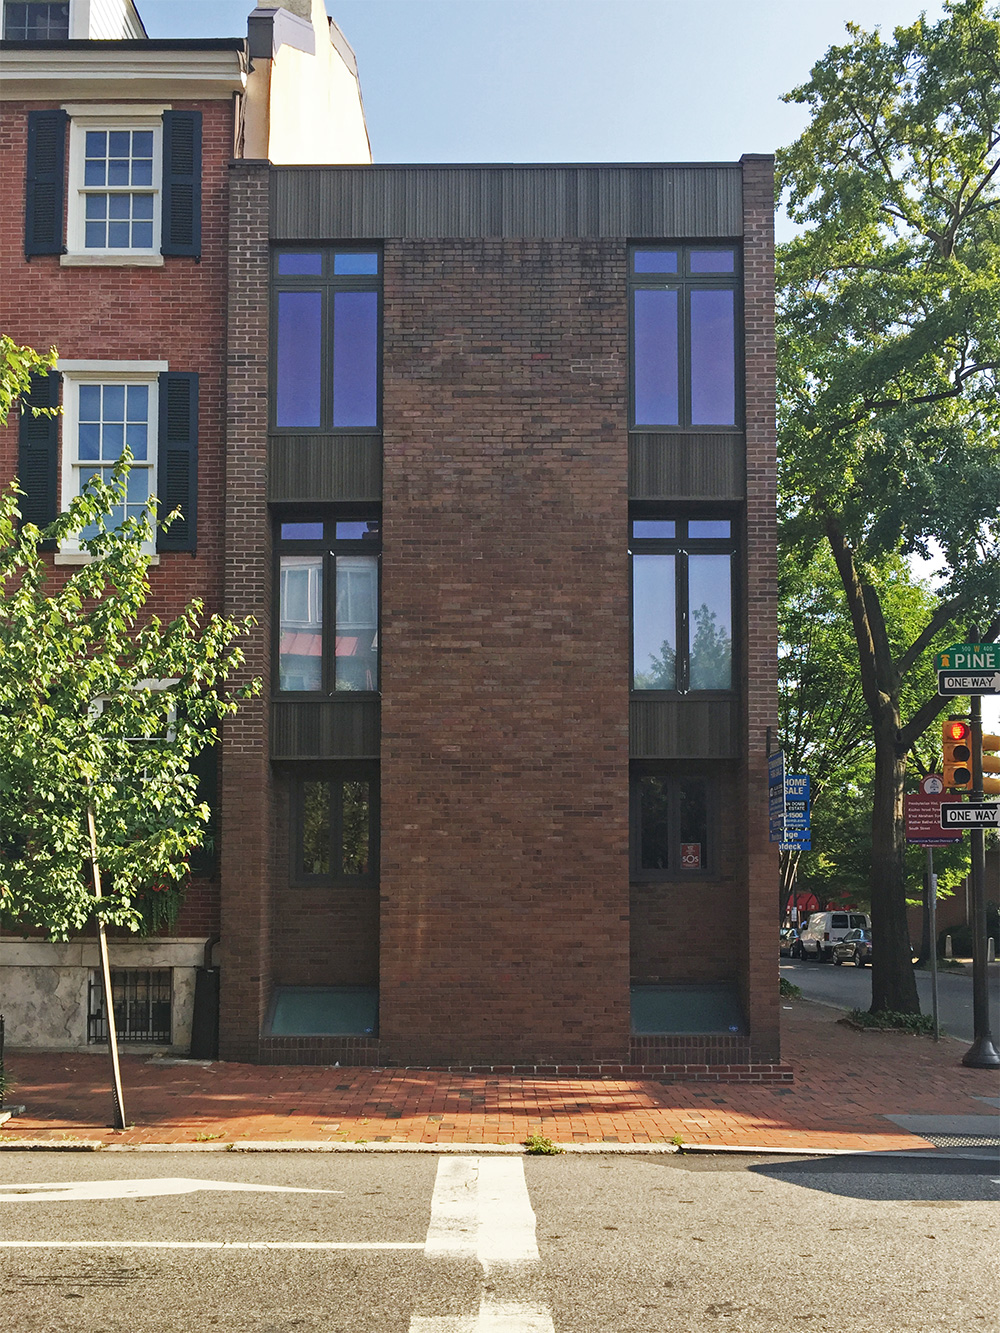 Photo of a Brick Modern home at the corner of 5th and Pine Streets.